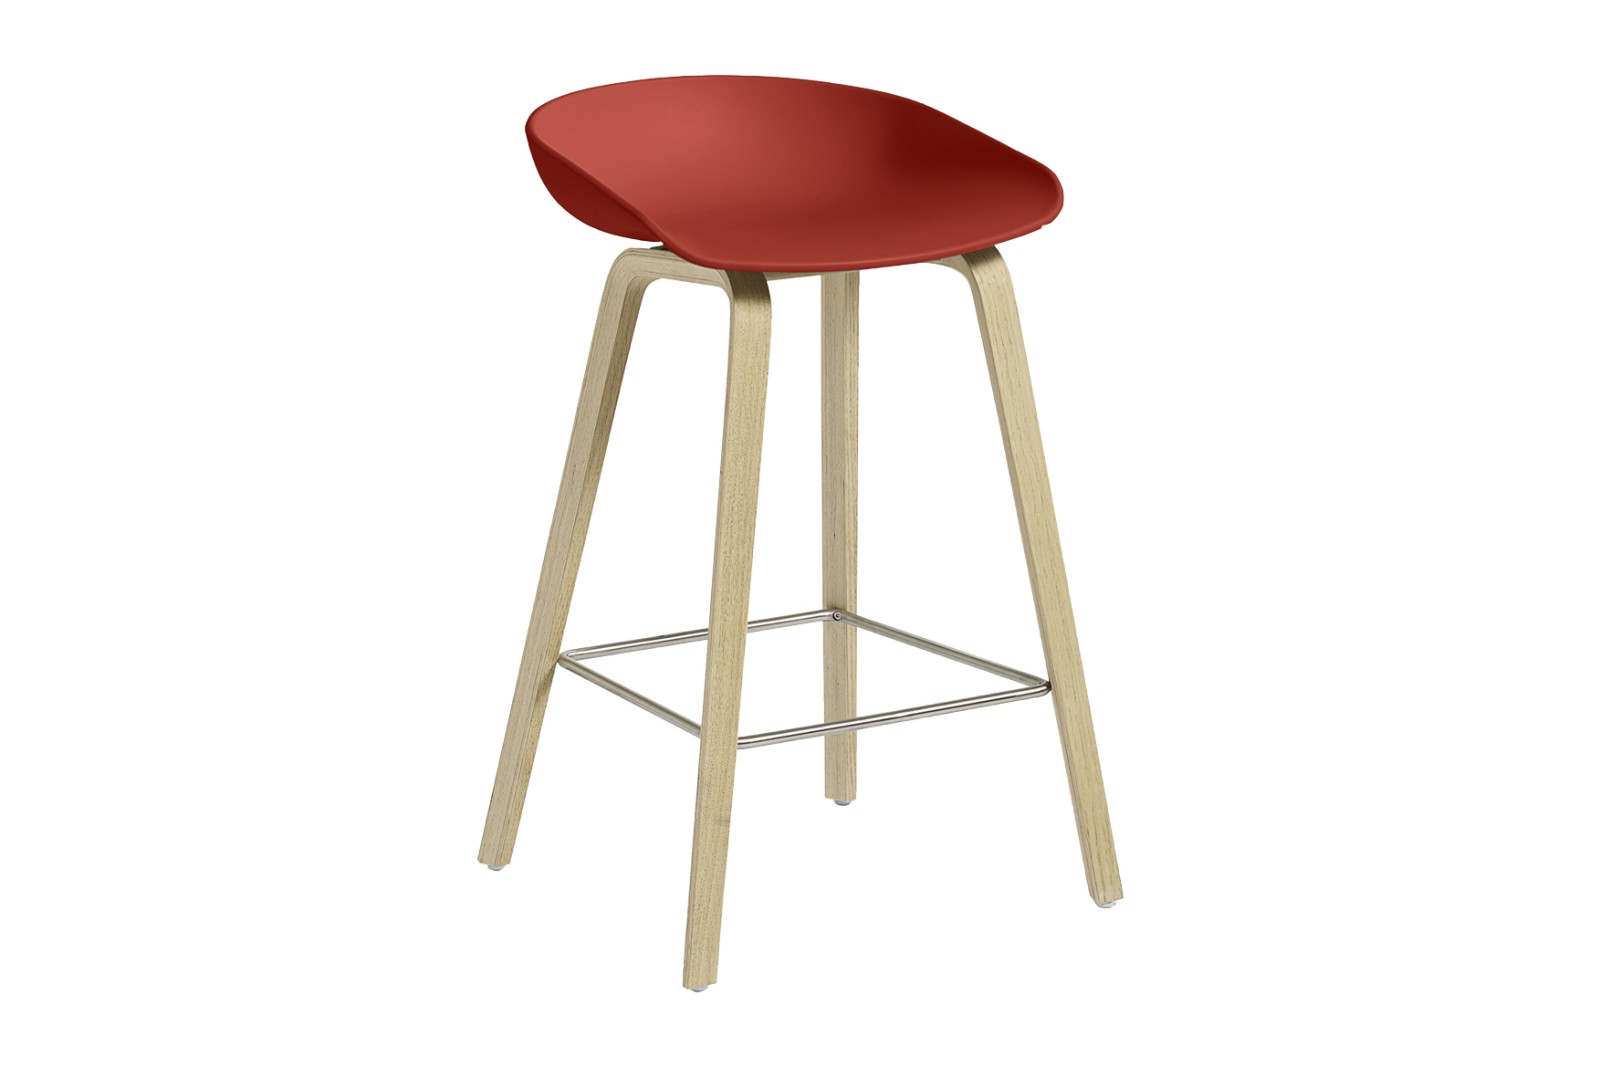 About A Stool AAS32 Soap Treated Oak Base, Warm Red Seat, Low, Stainless Steel